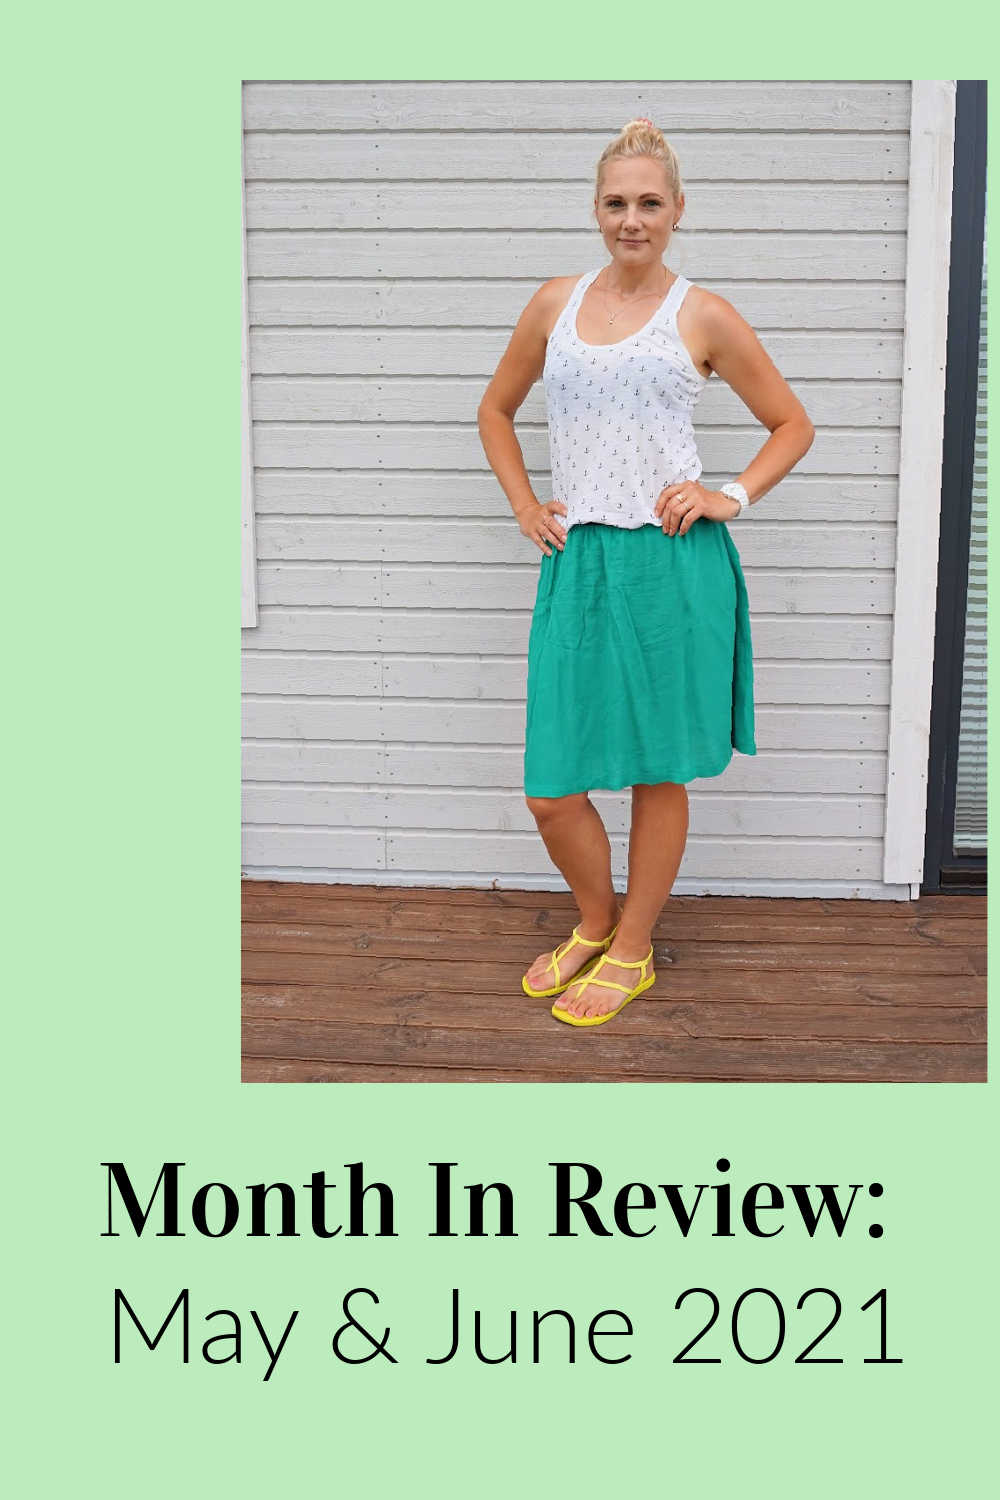 Month In Review: May & June 2021